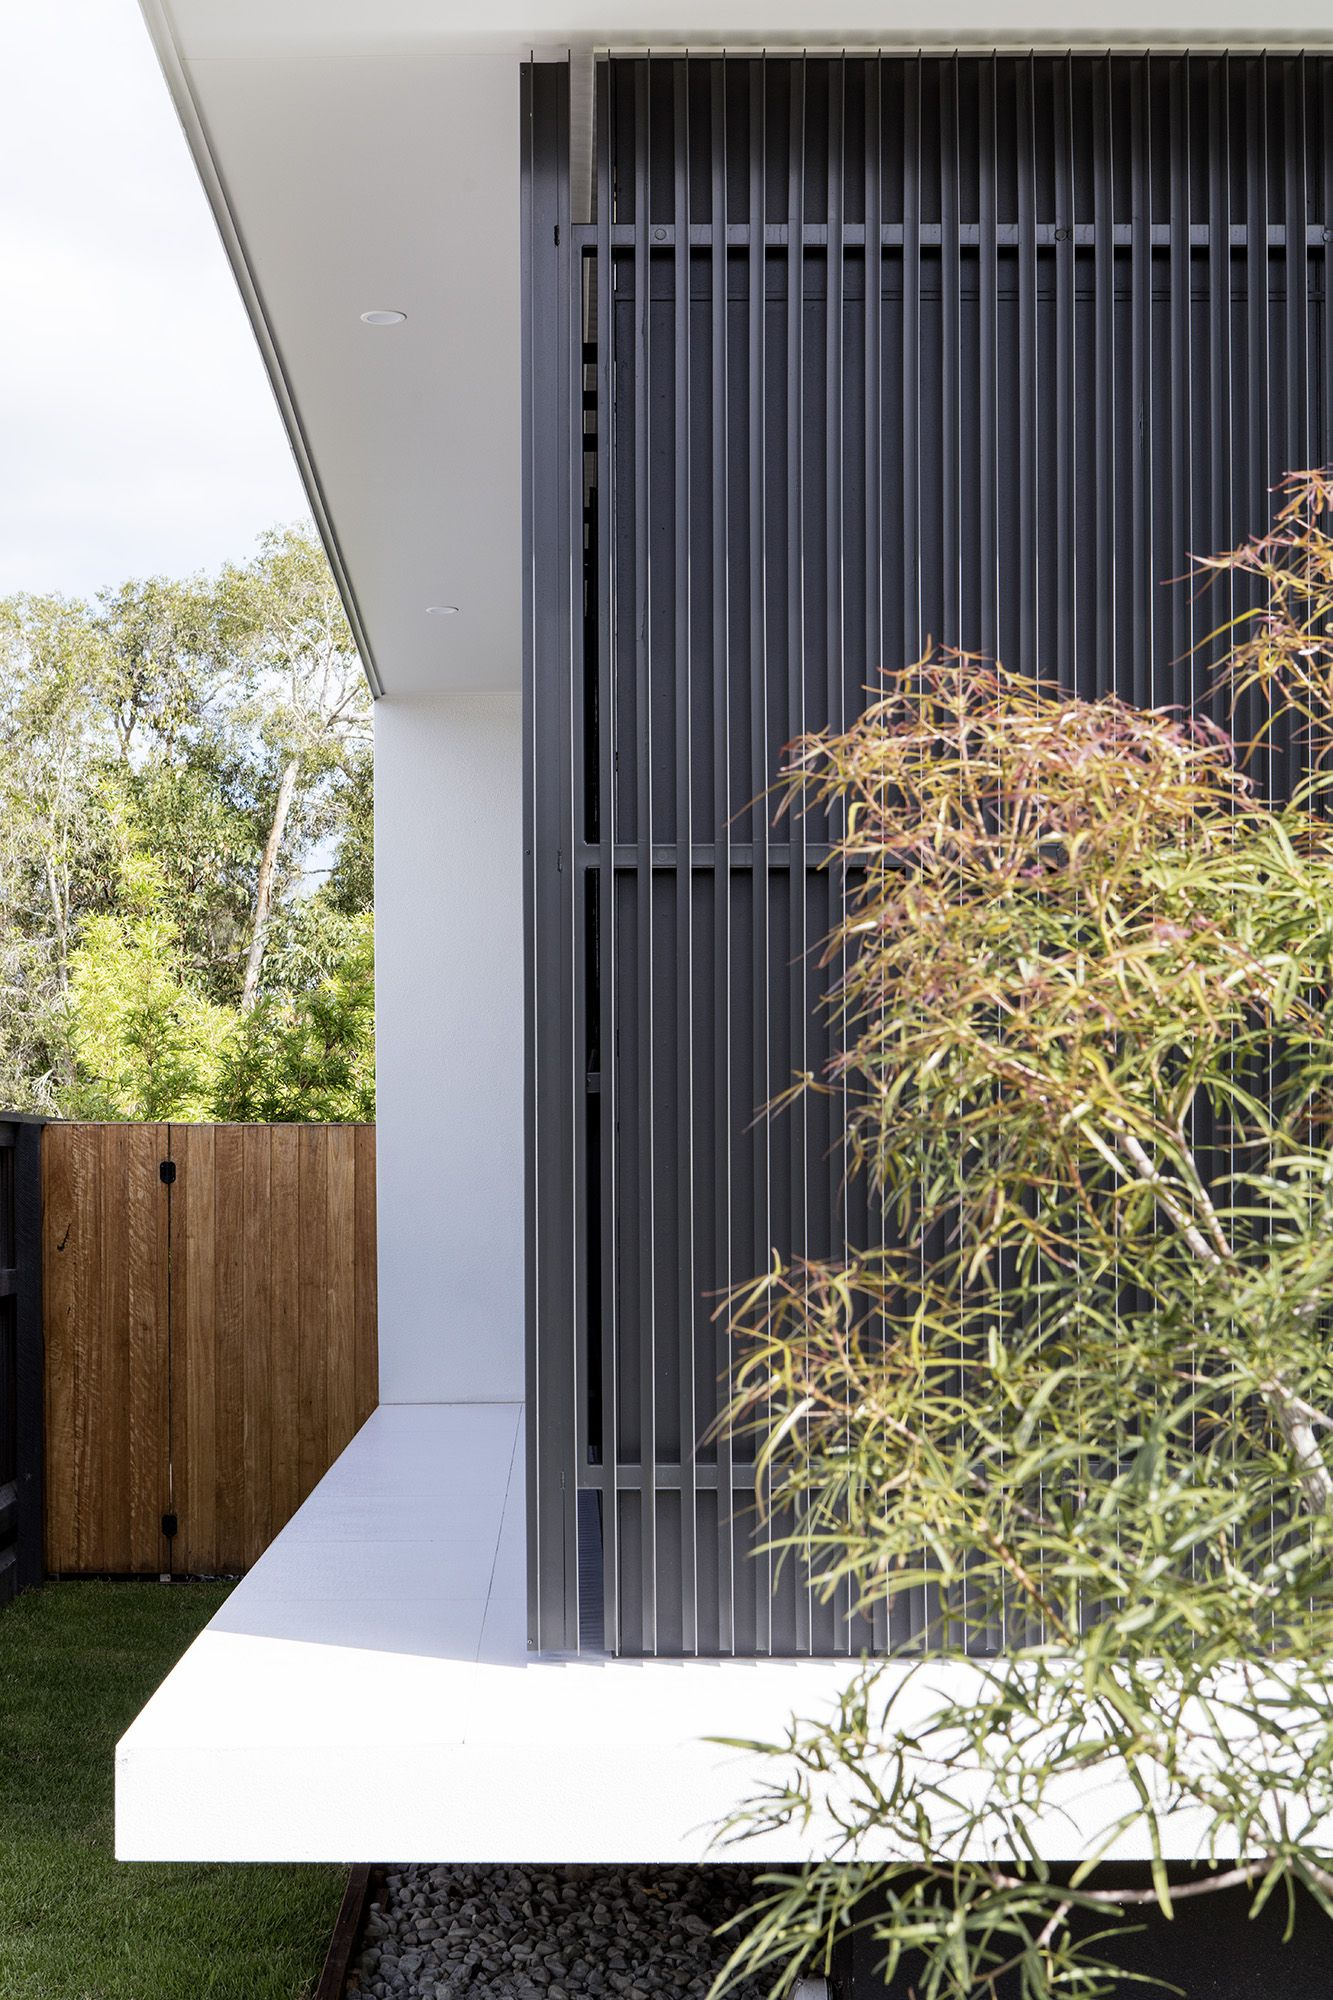 Modern home design by immackulate designer homes the peregian springs project located on sunshine coast qld australia also rh pinterest